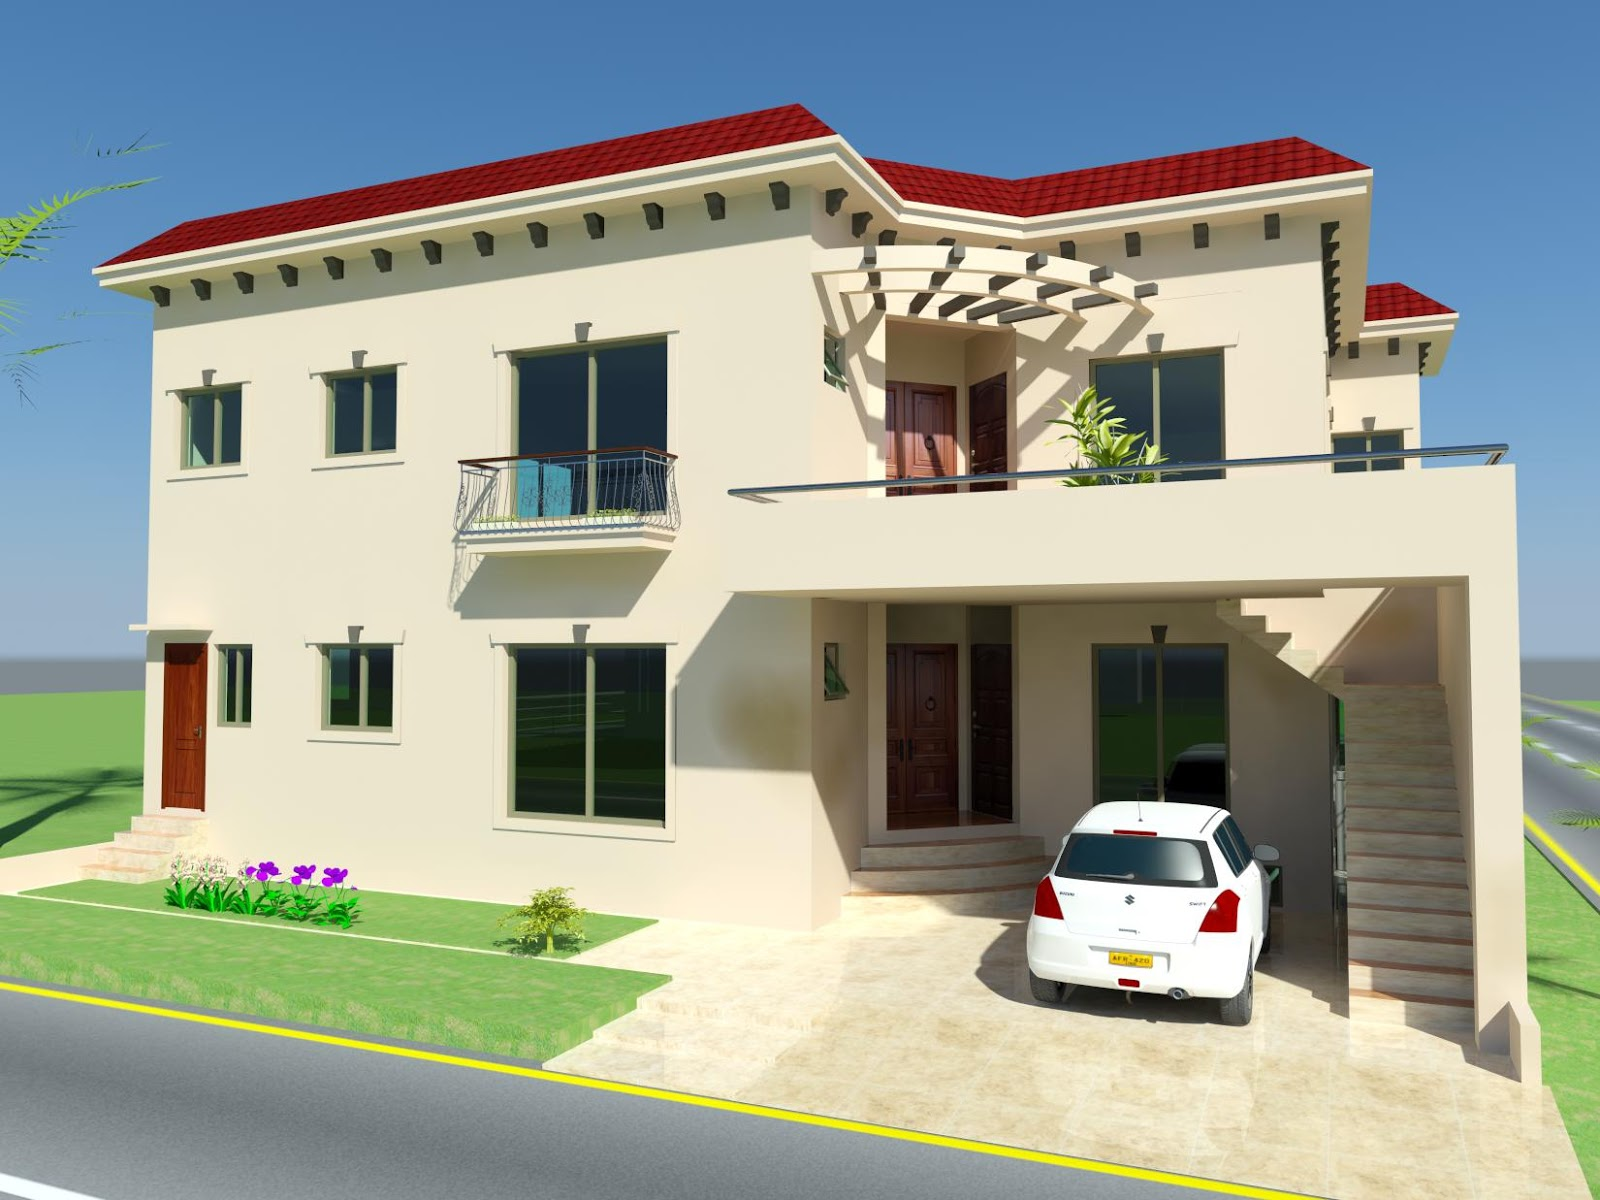 3d house designs in pakistan home design and style for House designs in pakistan